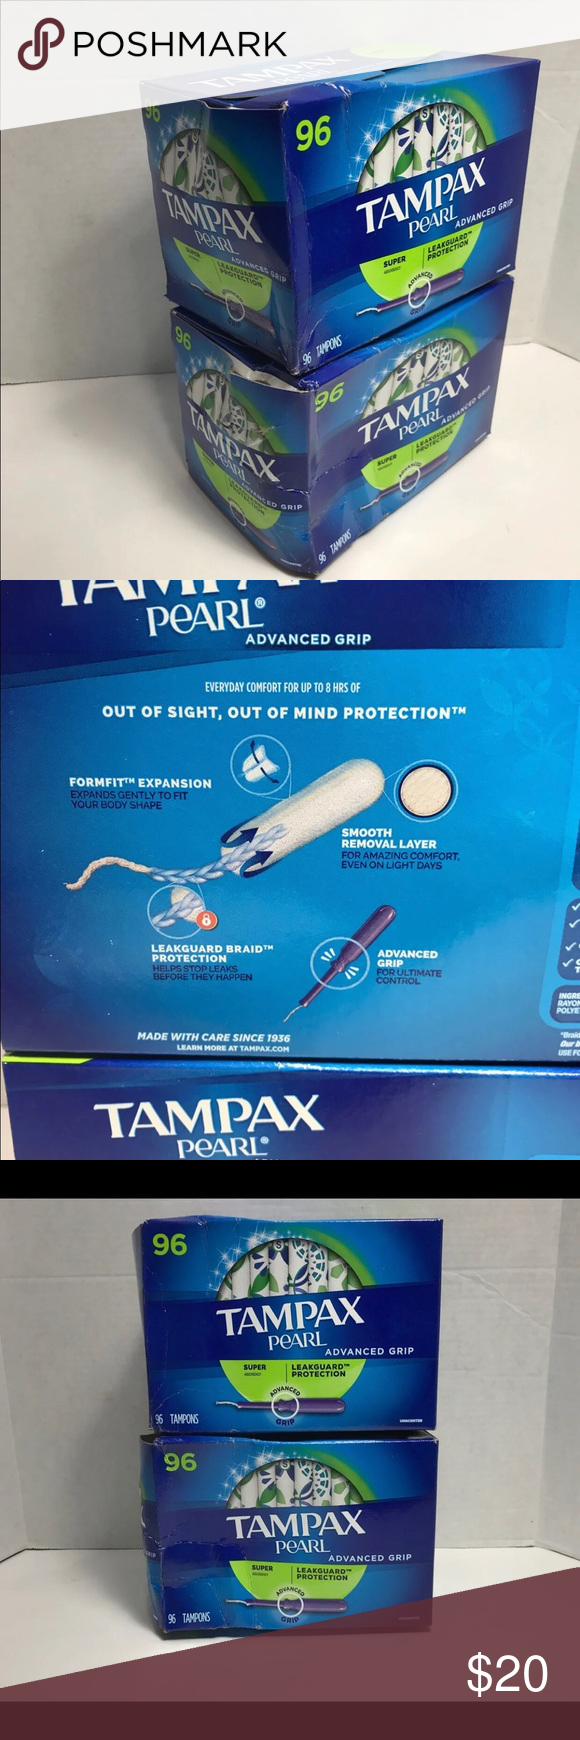 Tampax Pearl 192ct Super Absorbency Tampons Box Is Damaged And Distressed All Are Individually Sealed And Accounted For Price Firm Tampax Pearl Tampax Pearls